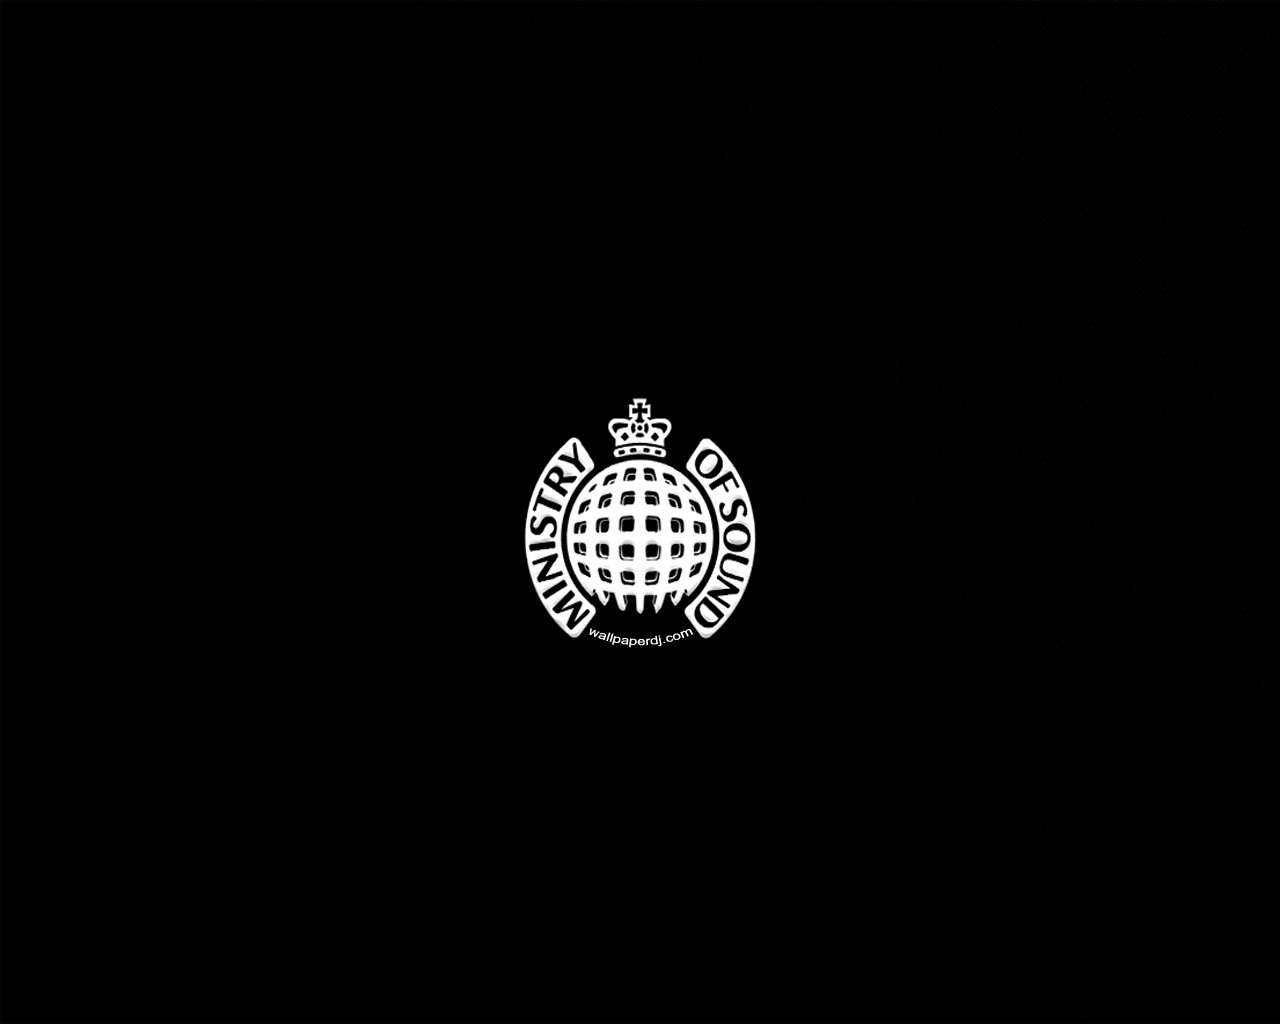 Ministry of sound logo HD and Wide Wallpapers